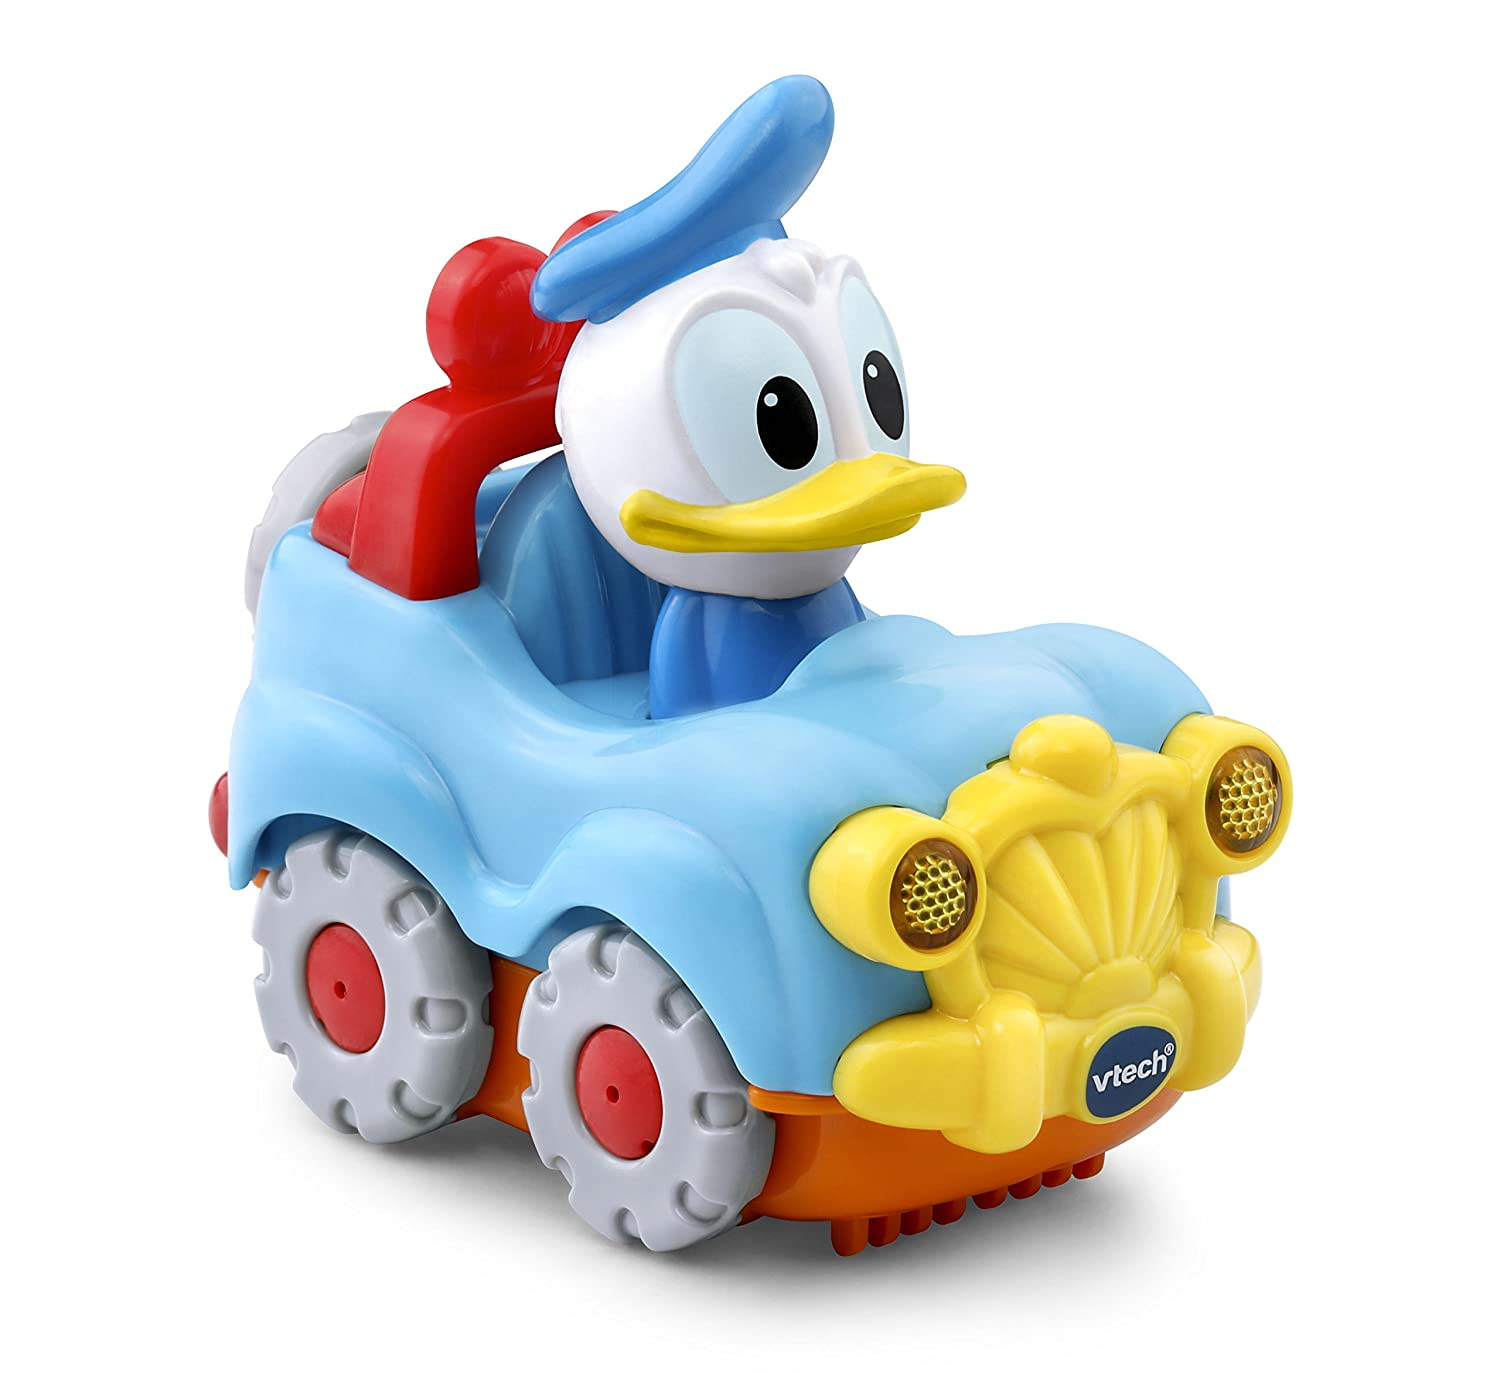 VTech Go! Go! Smart Wheels Donald SUV 80-511500